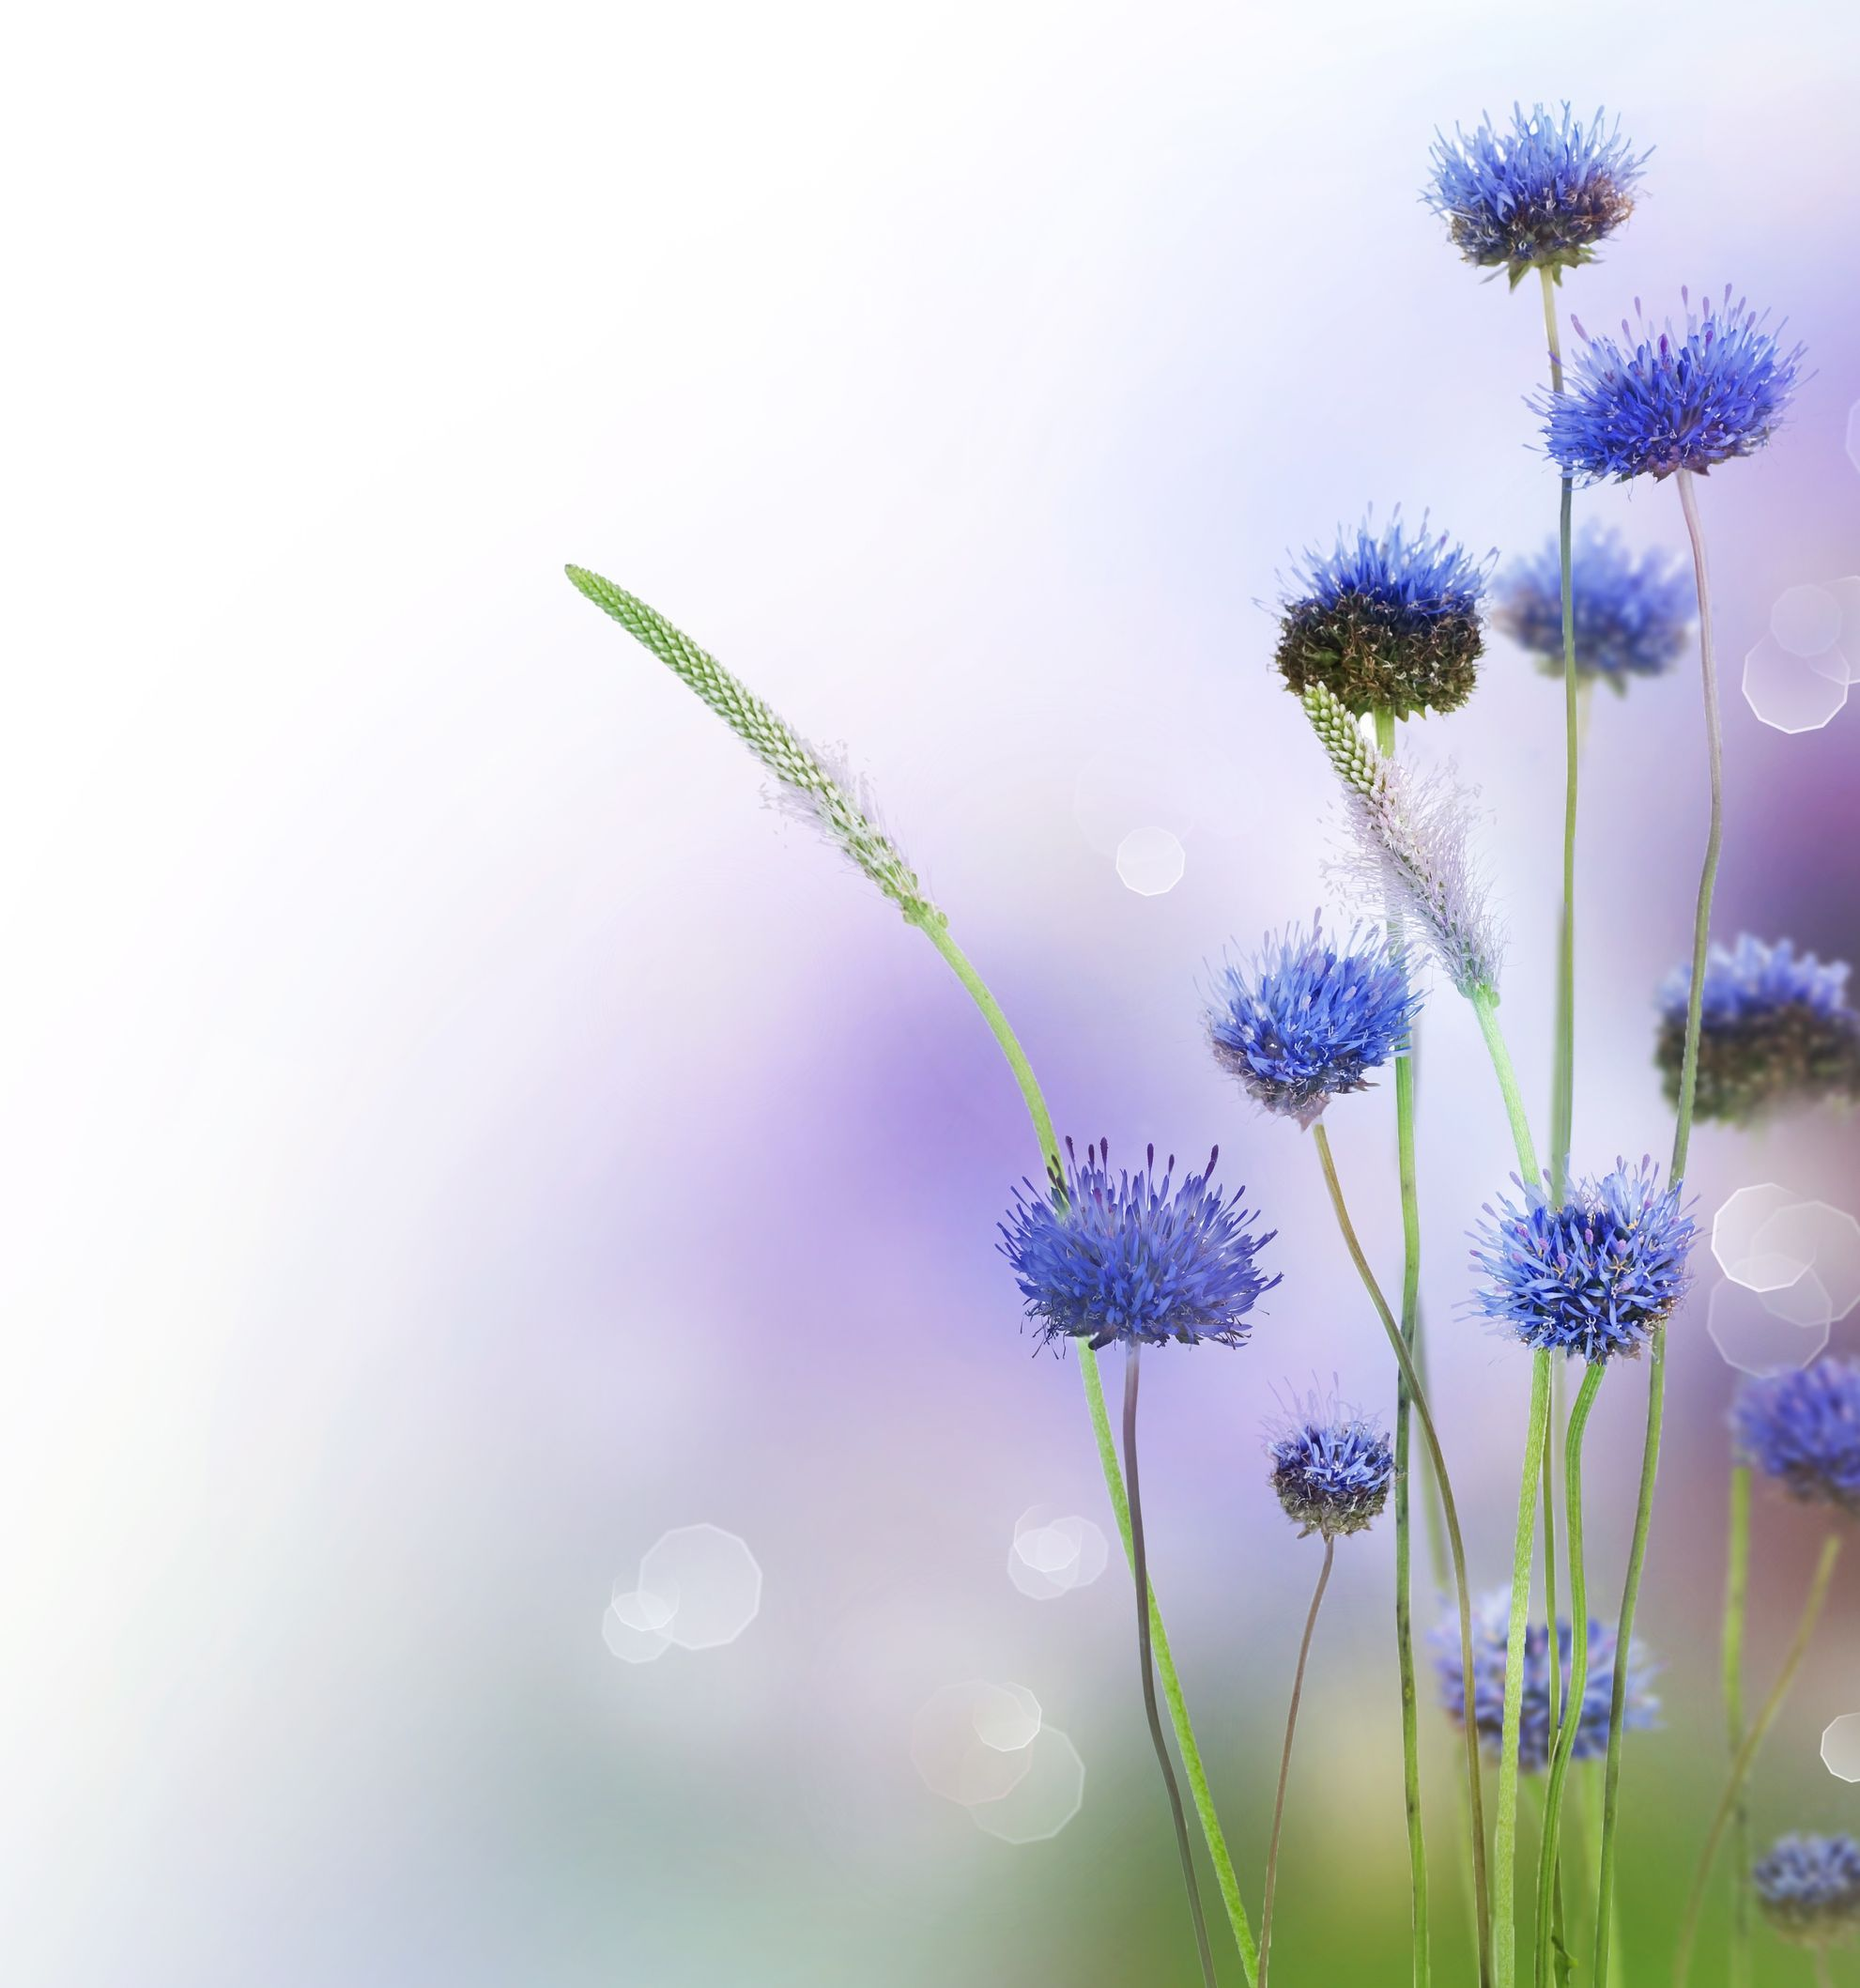 flowers wallpaper app for android